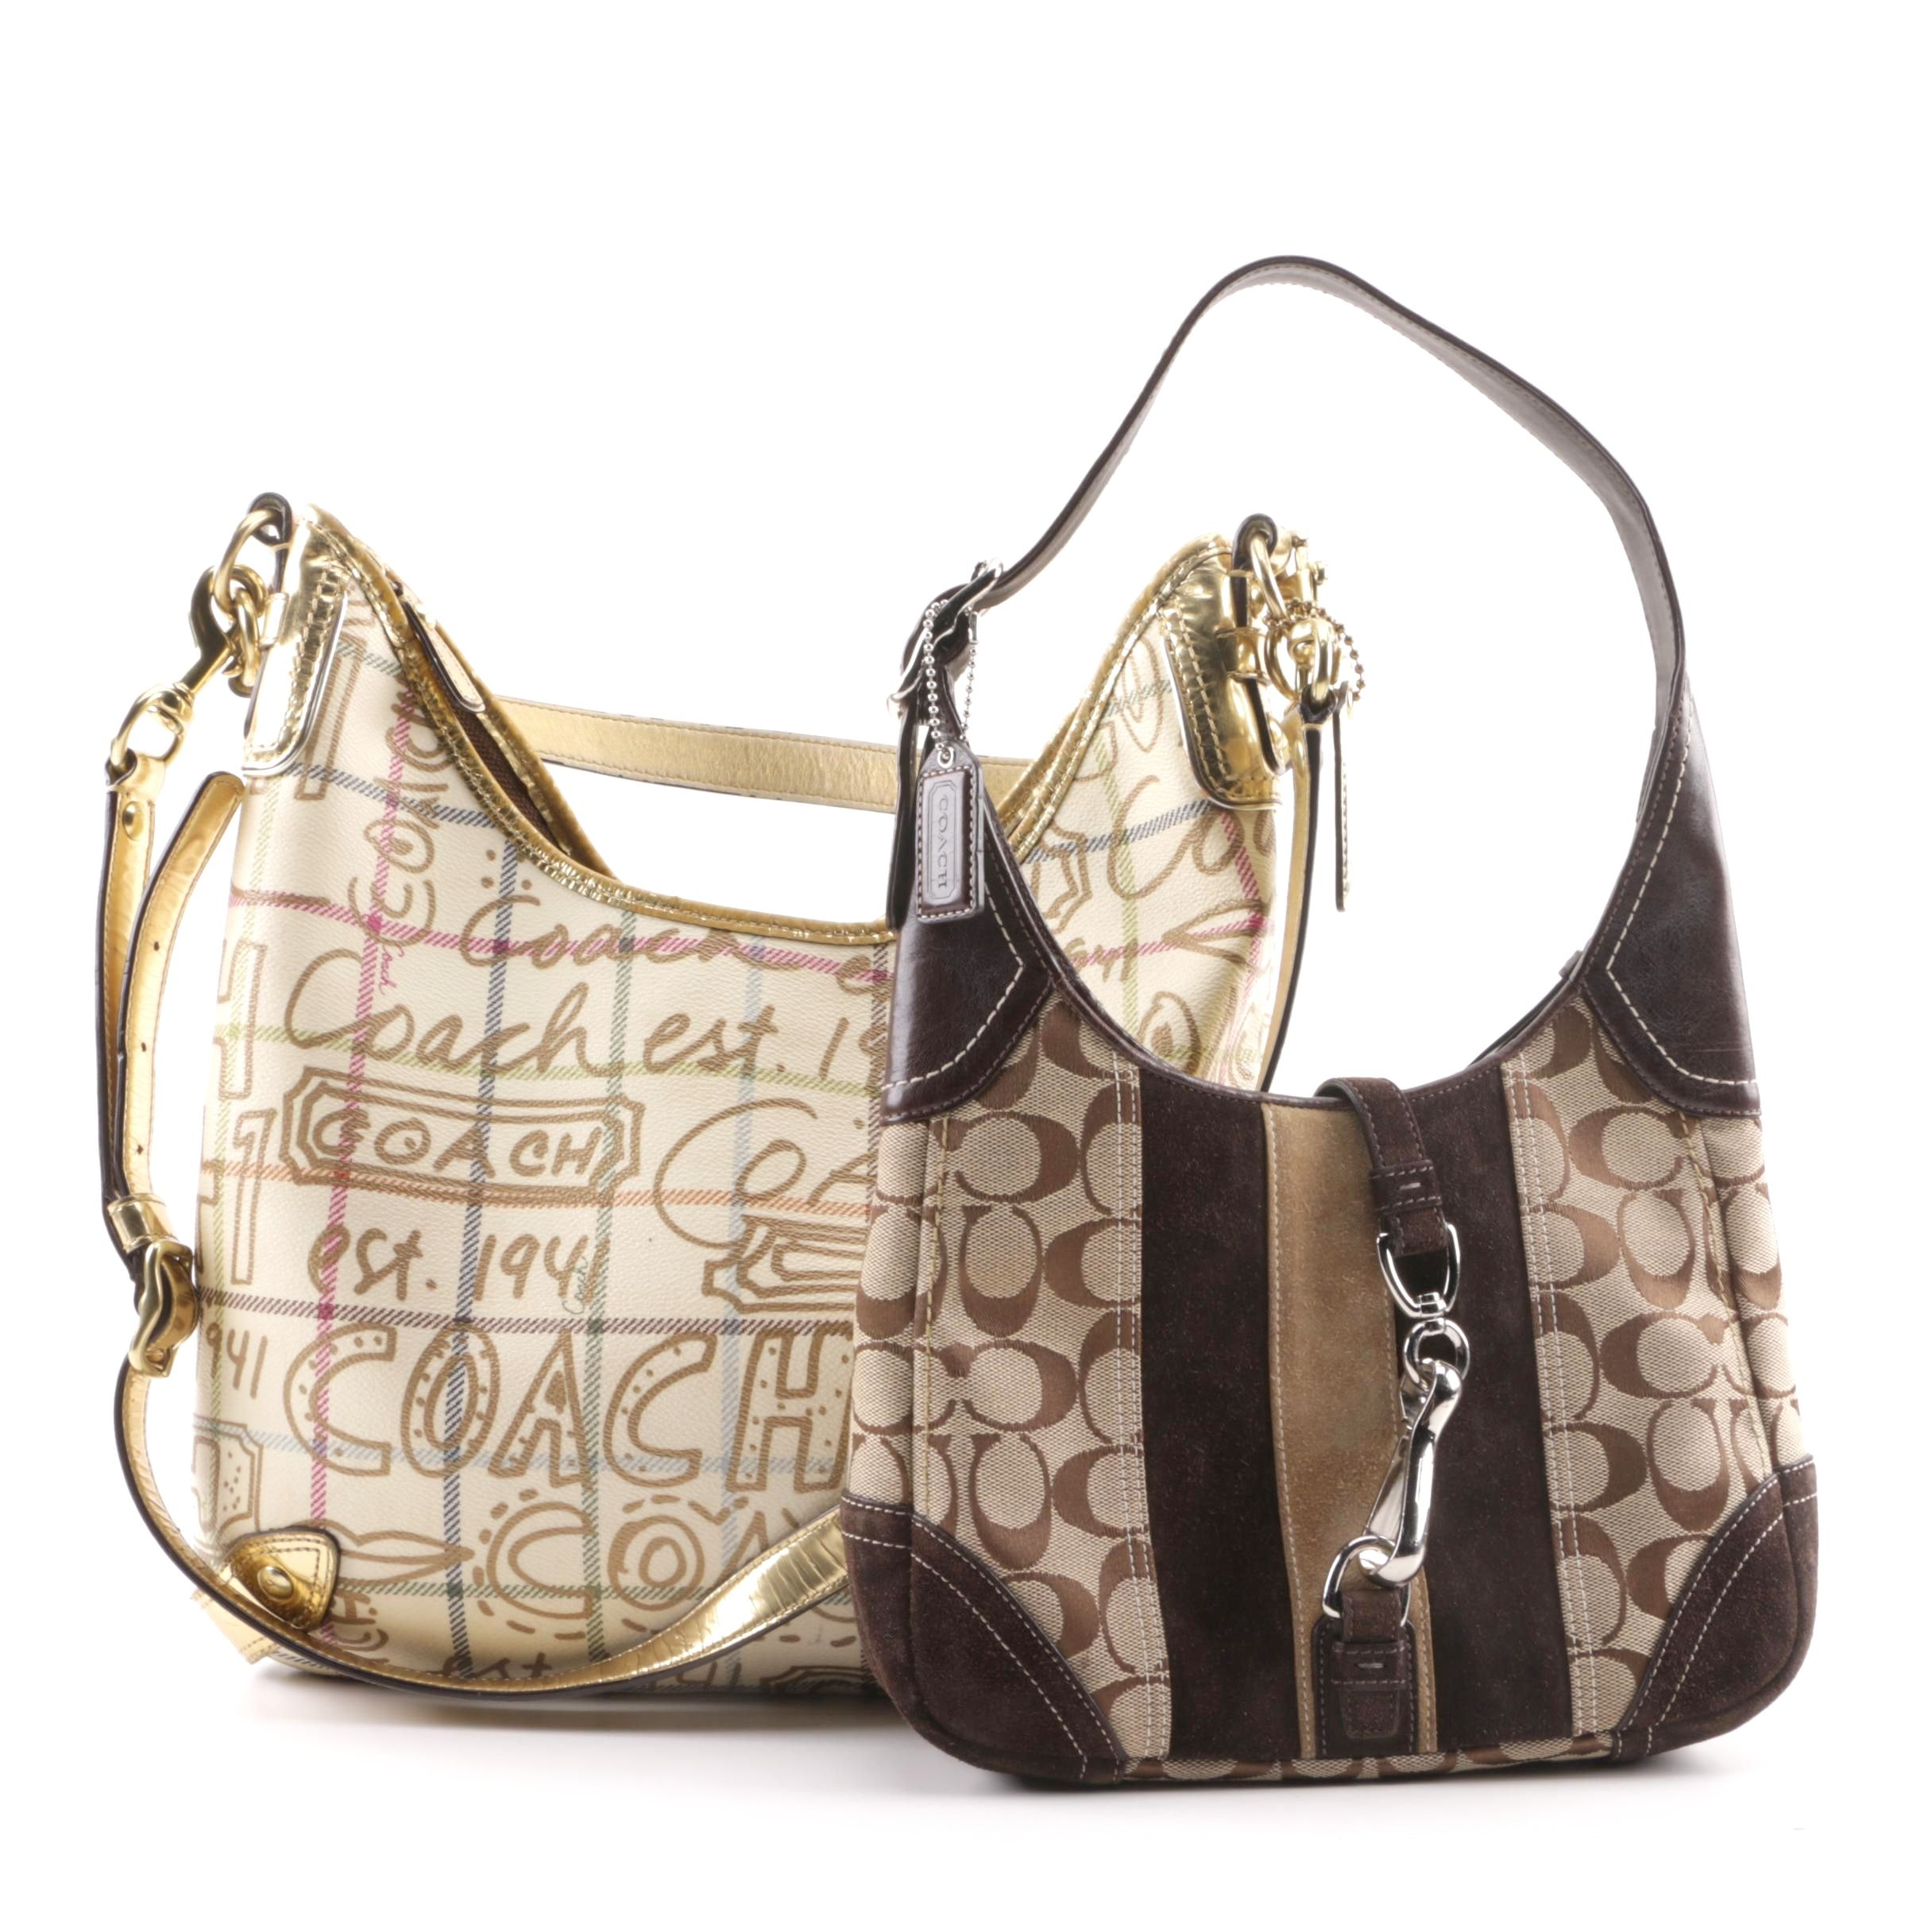 Coach Signature and Chelsea Tattersall Graffiti Hobo Bags